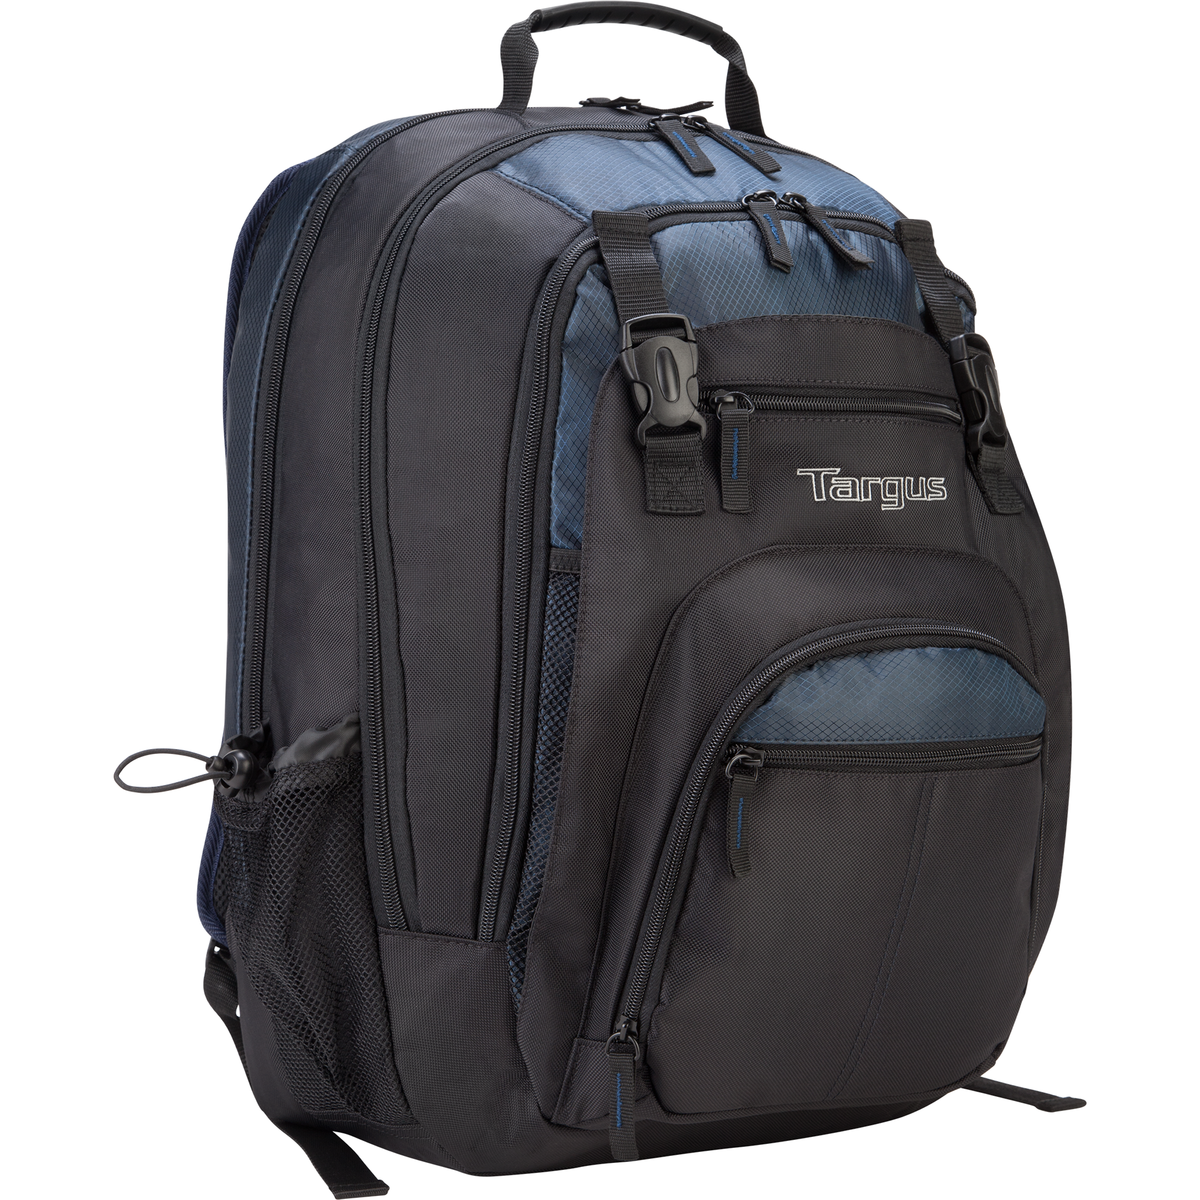 "17"" XL Laptop Backpack - TXL617 - Black/Blue: Backpacks: Targus"